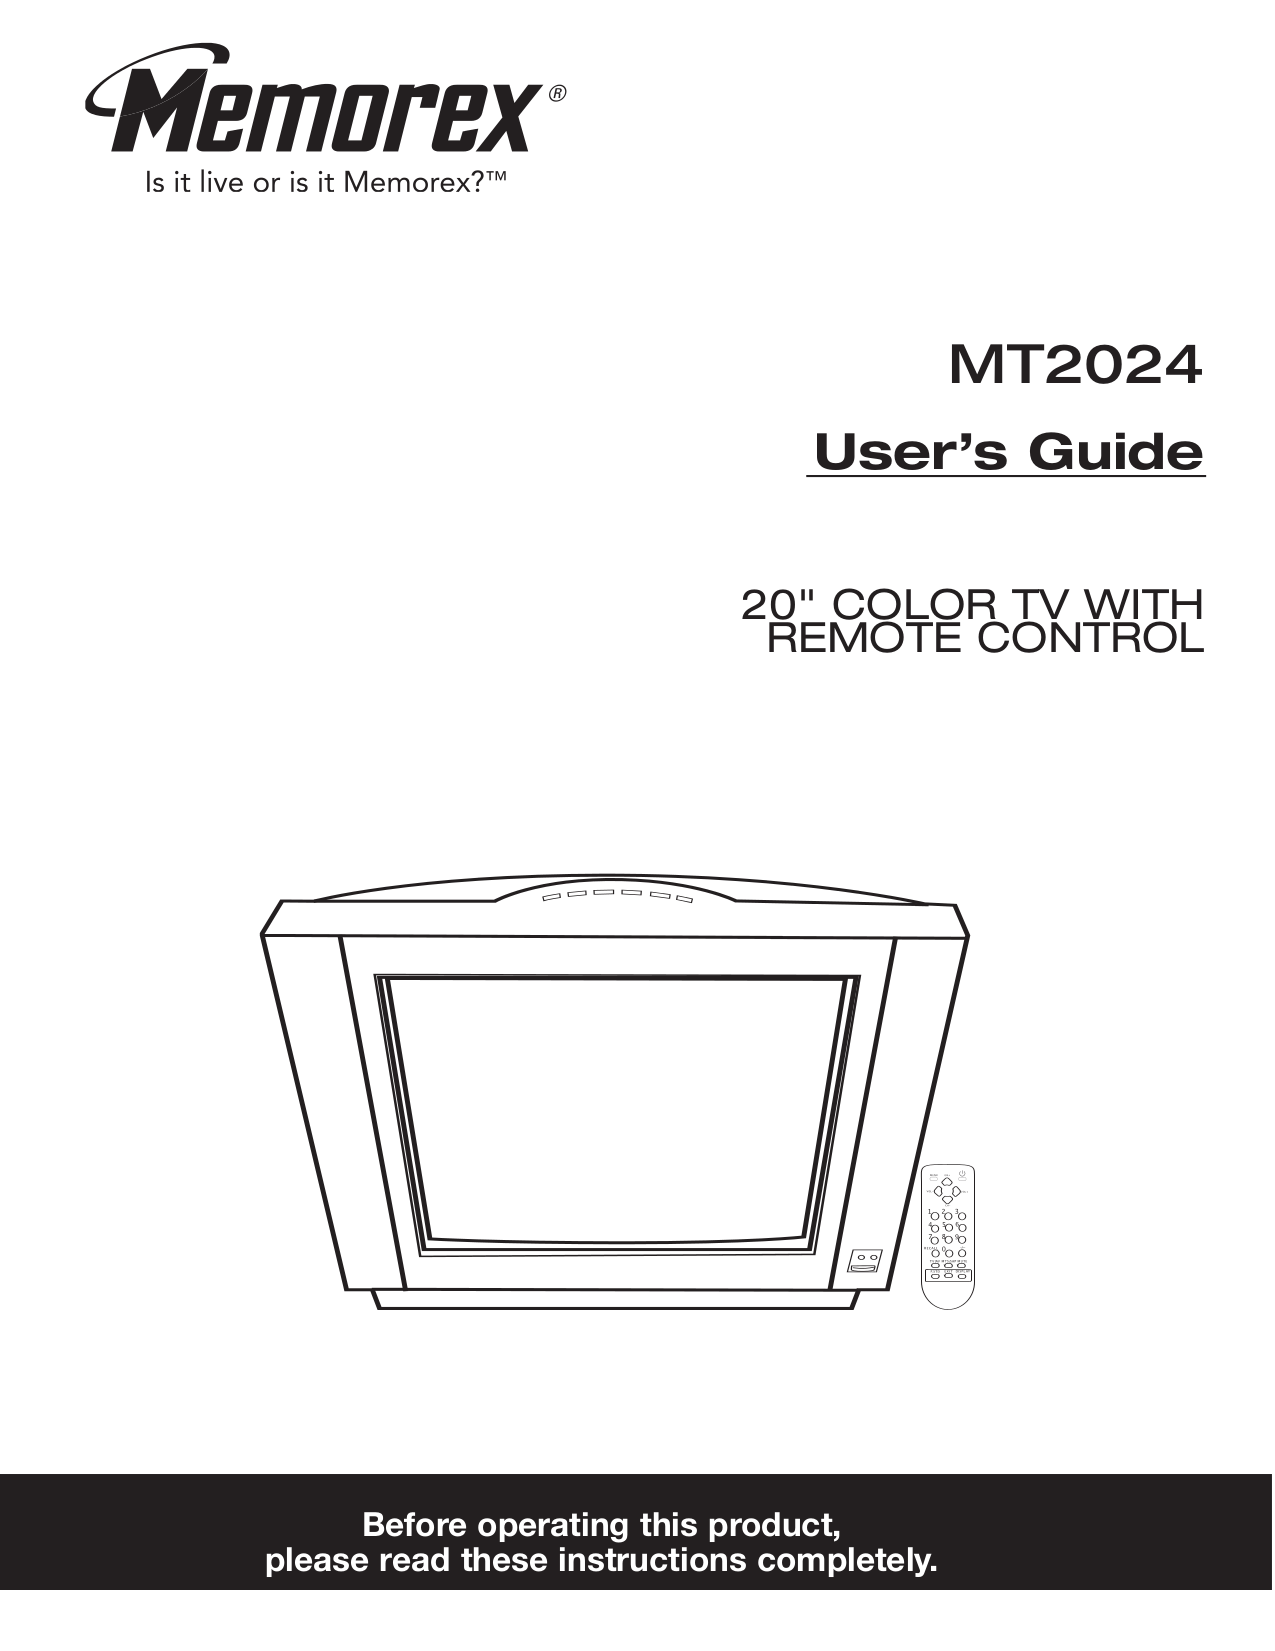 MT2024 8 2 05.pdf 0 memorex wiring diagram wiring diagrams  at bayanpartner.co